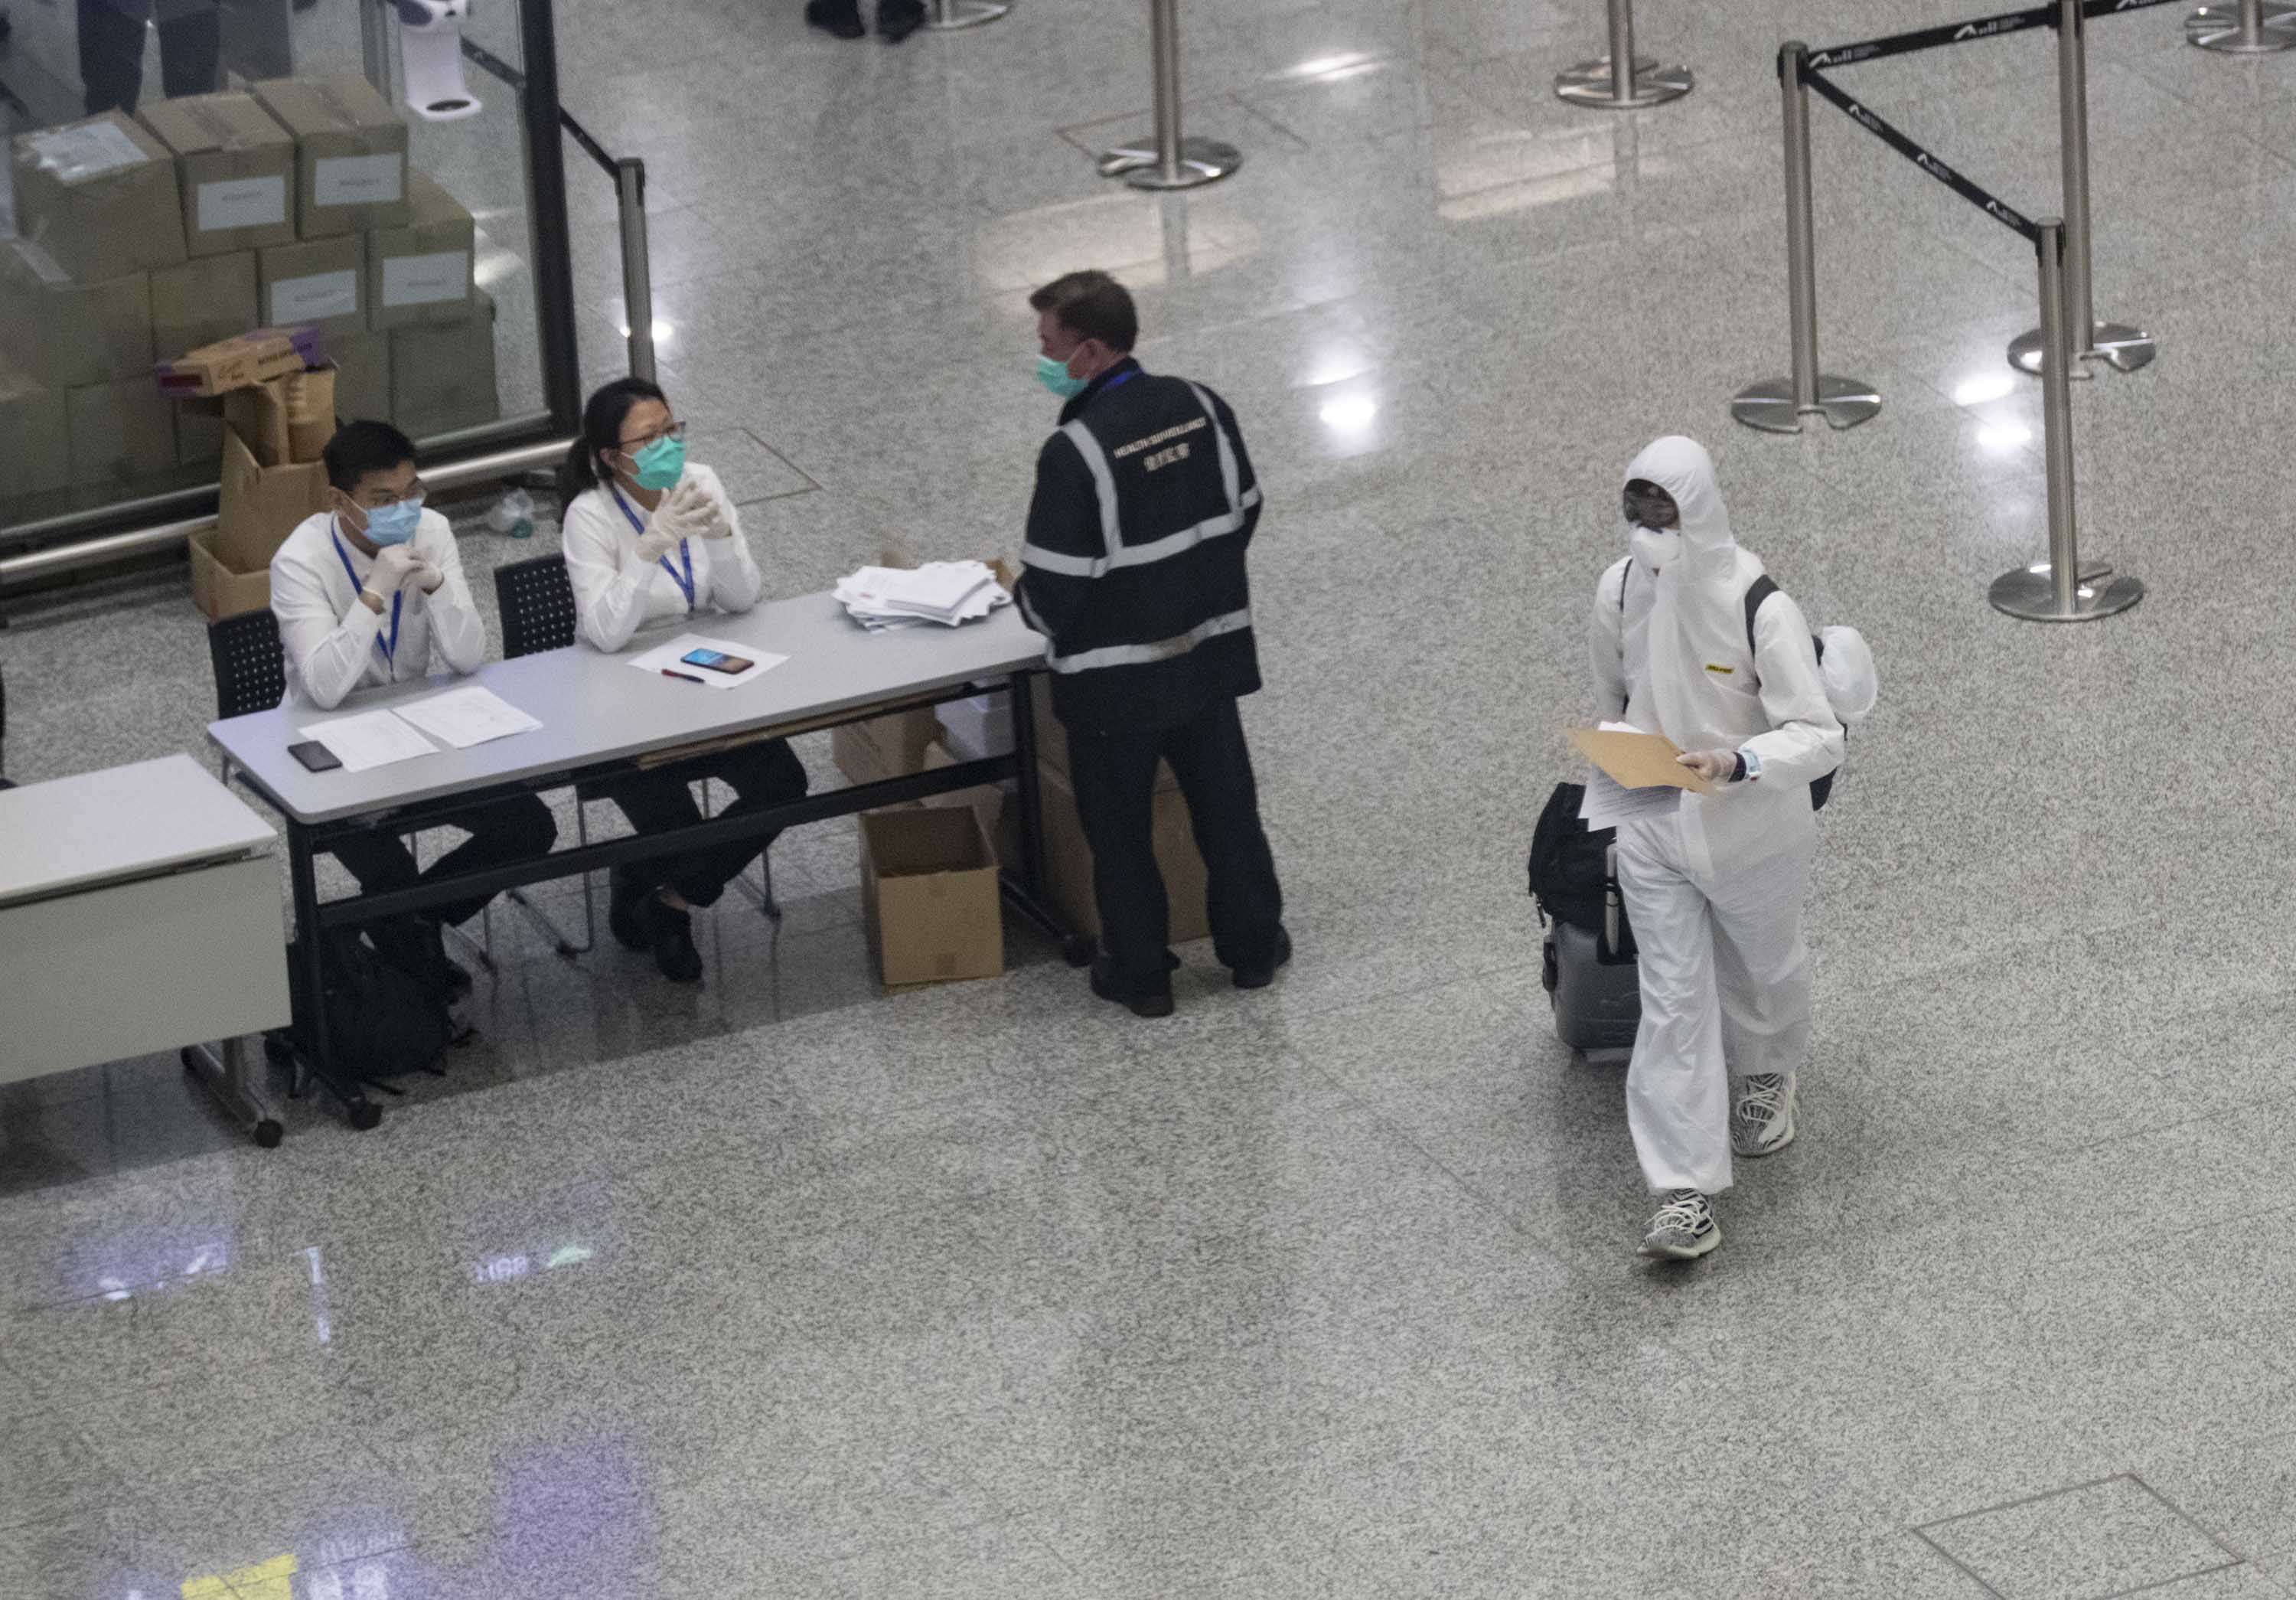 A passenger wearing a protective suite arrives at Hong Kong International airport on March 24.